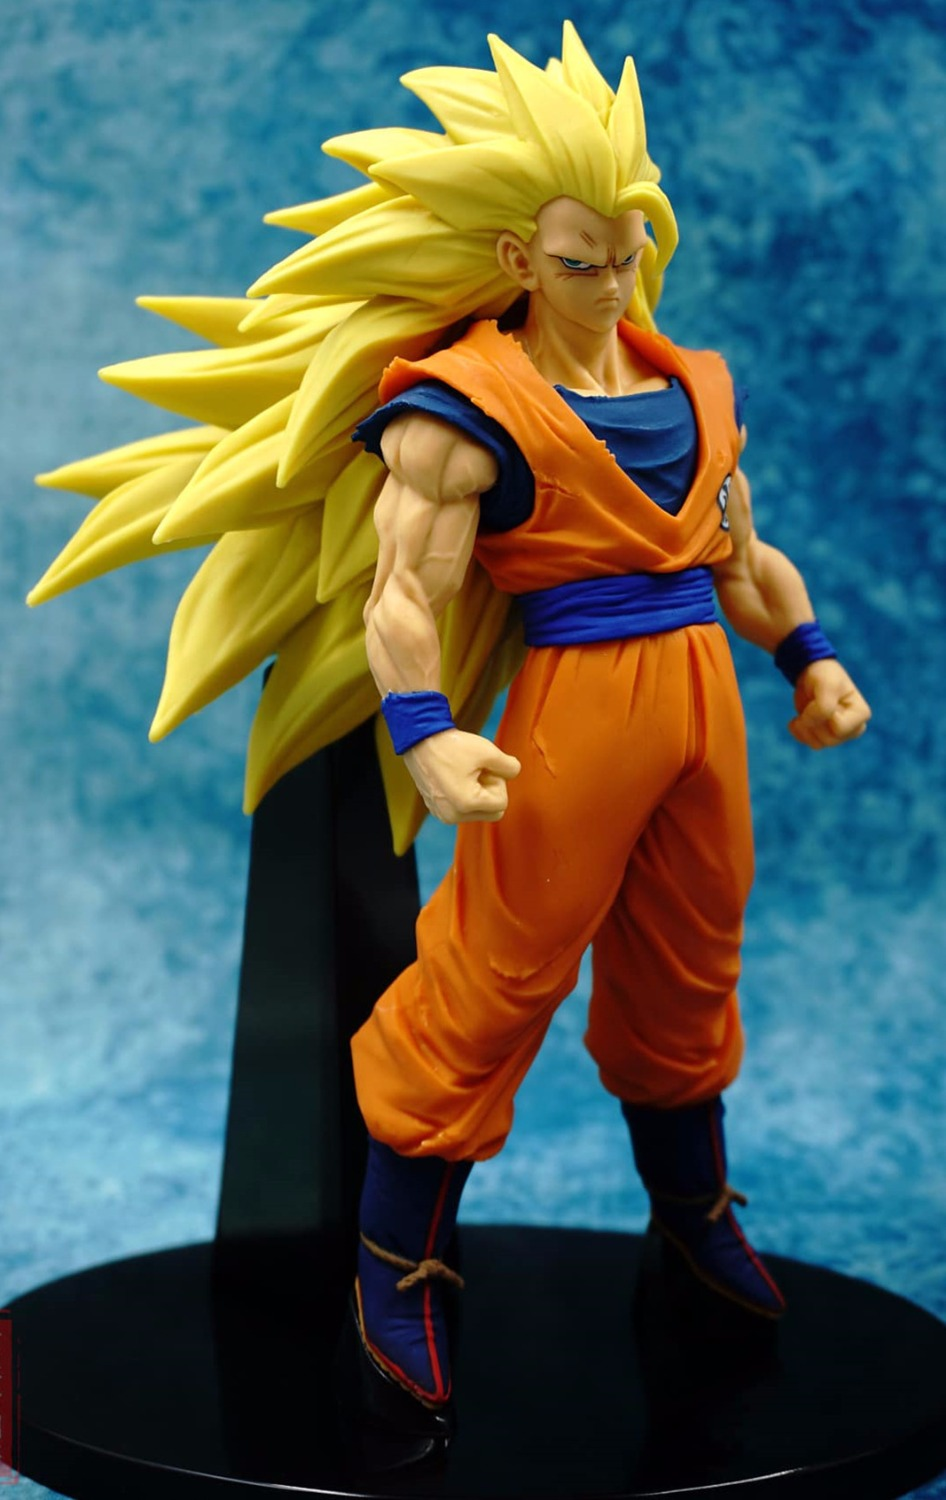 Huong Anime 20 CM Dragon Ball Z Son Gokou 1/8 scale painted Super Saiyan Son Gokou PVC Action Figure Collectible Model Toy anime 15cm dragon ball z action figure toys 5 9inch collectible son gokou figure models anime brinquedos christmas gifts doll